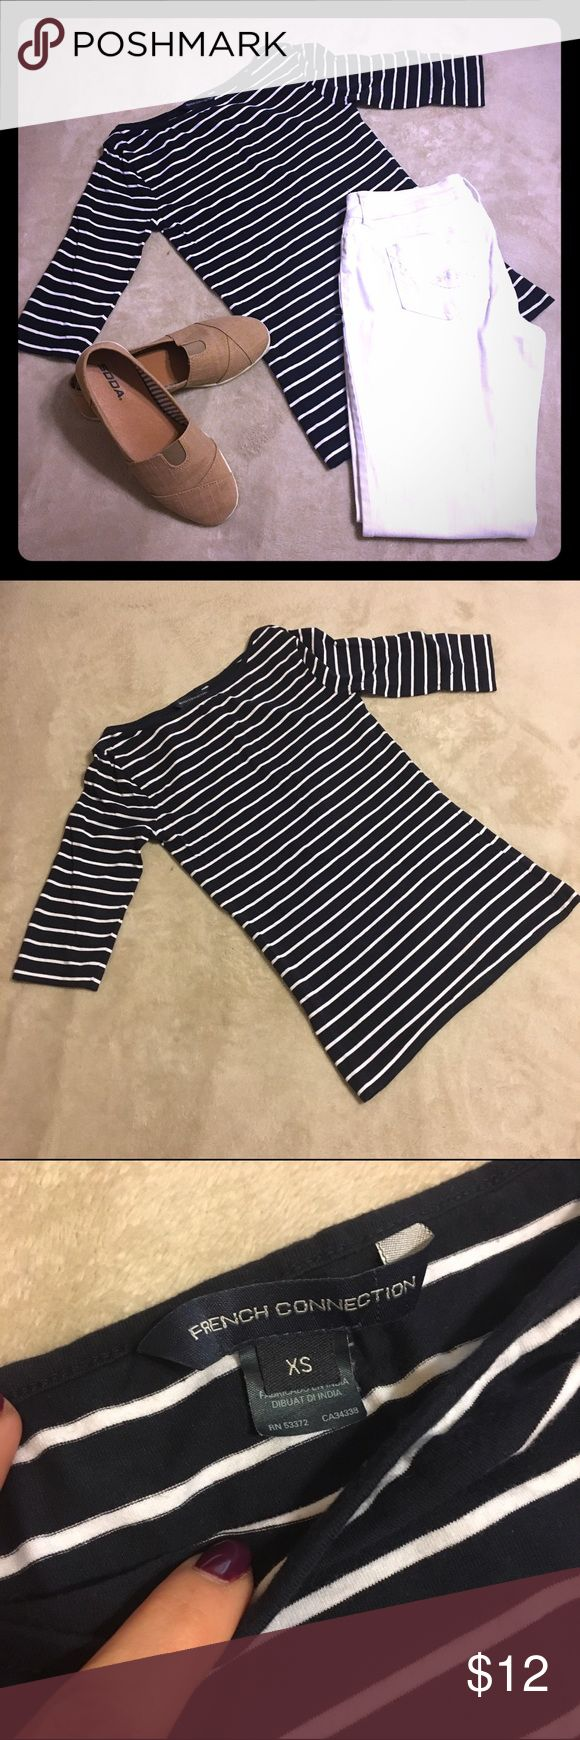 French Connection Striped Boat Neck Top- XS Women's 3/4 sleeve boat neck striped top by French Connection. Navy blue and white stripes. Perfect with white jeans or shorts, and sandals for a nautical summer look, or a day out on the boat! ⛵️ French Connection Tops Tees - Long Sleeve